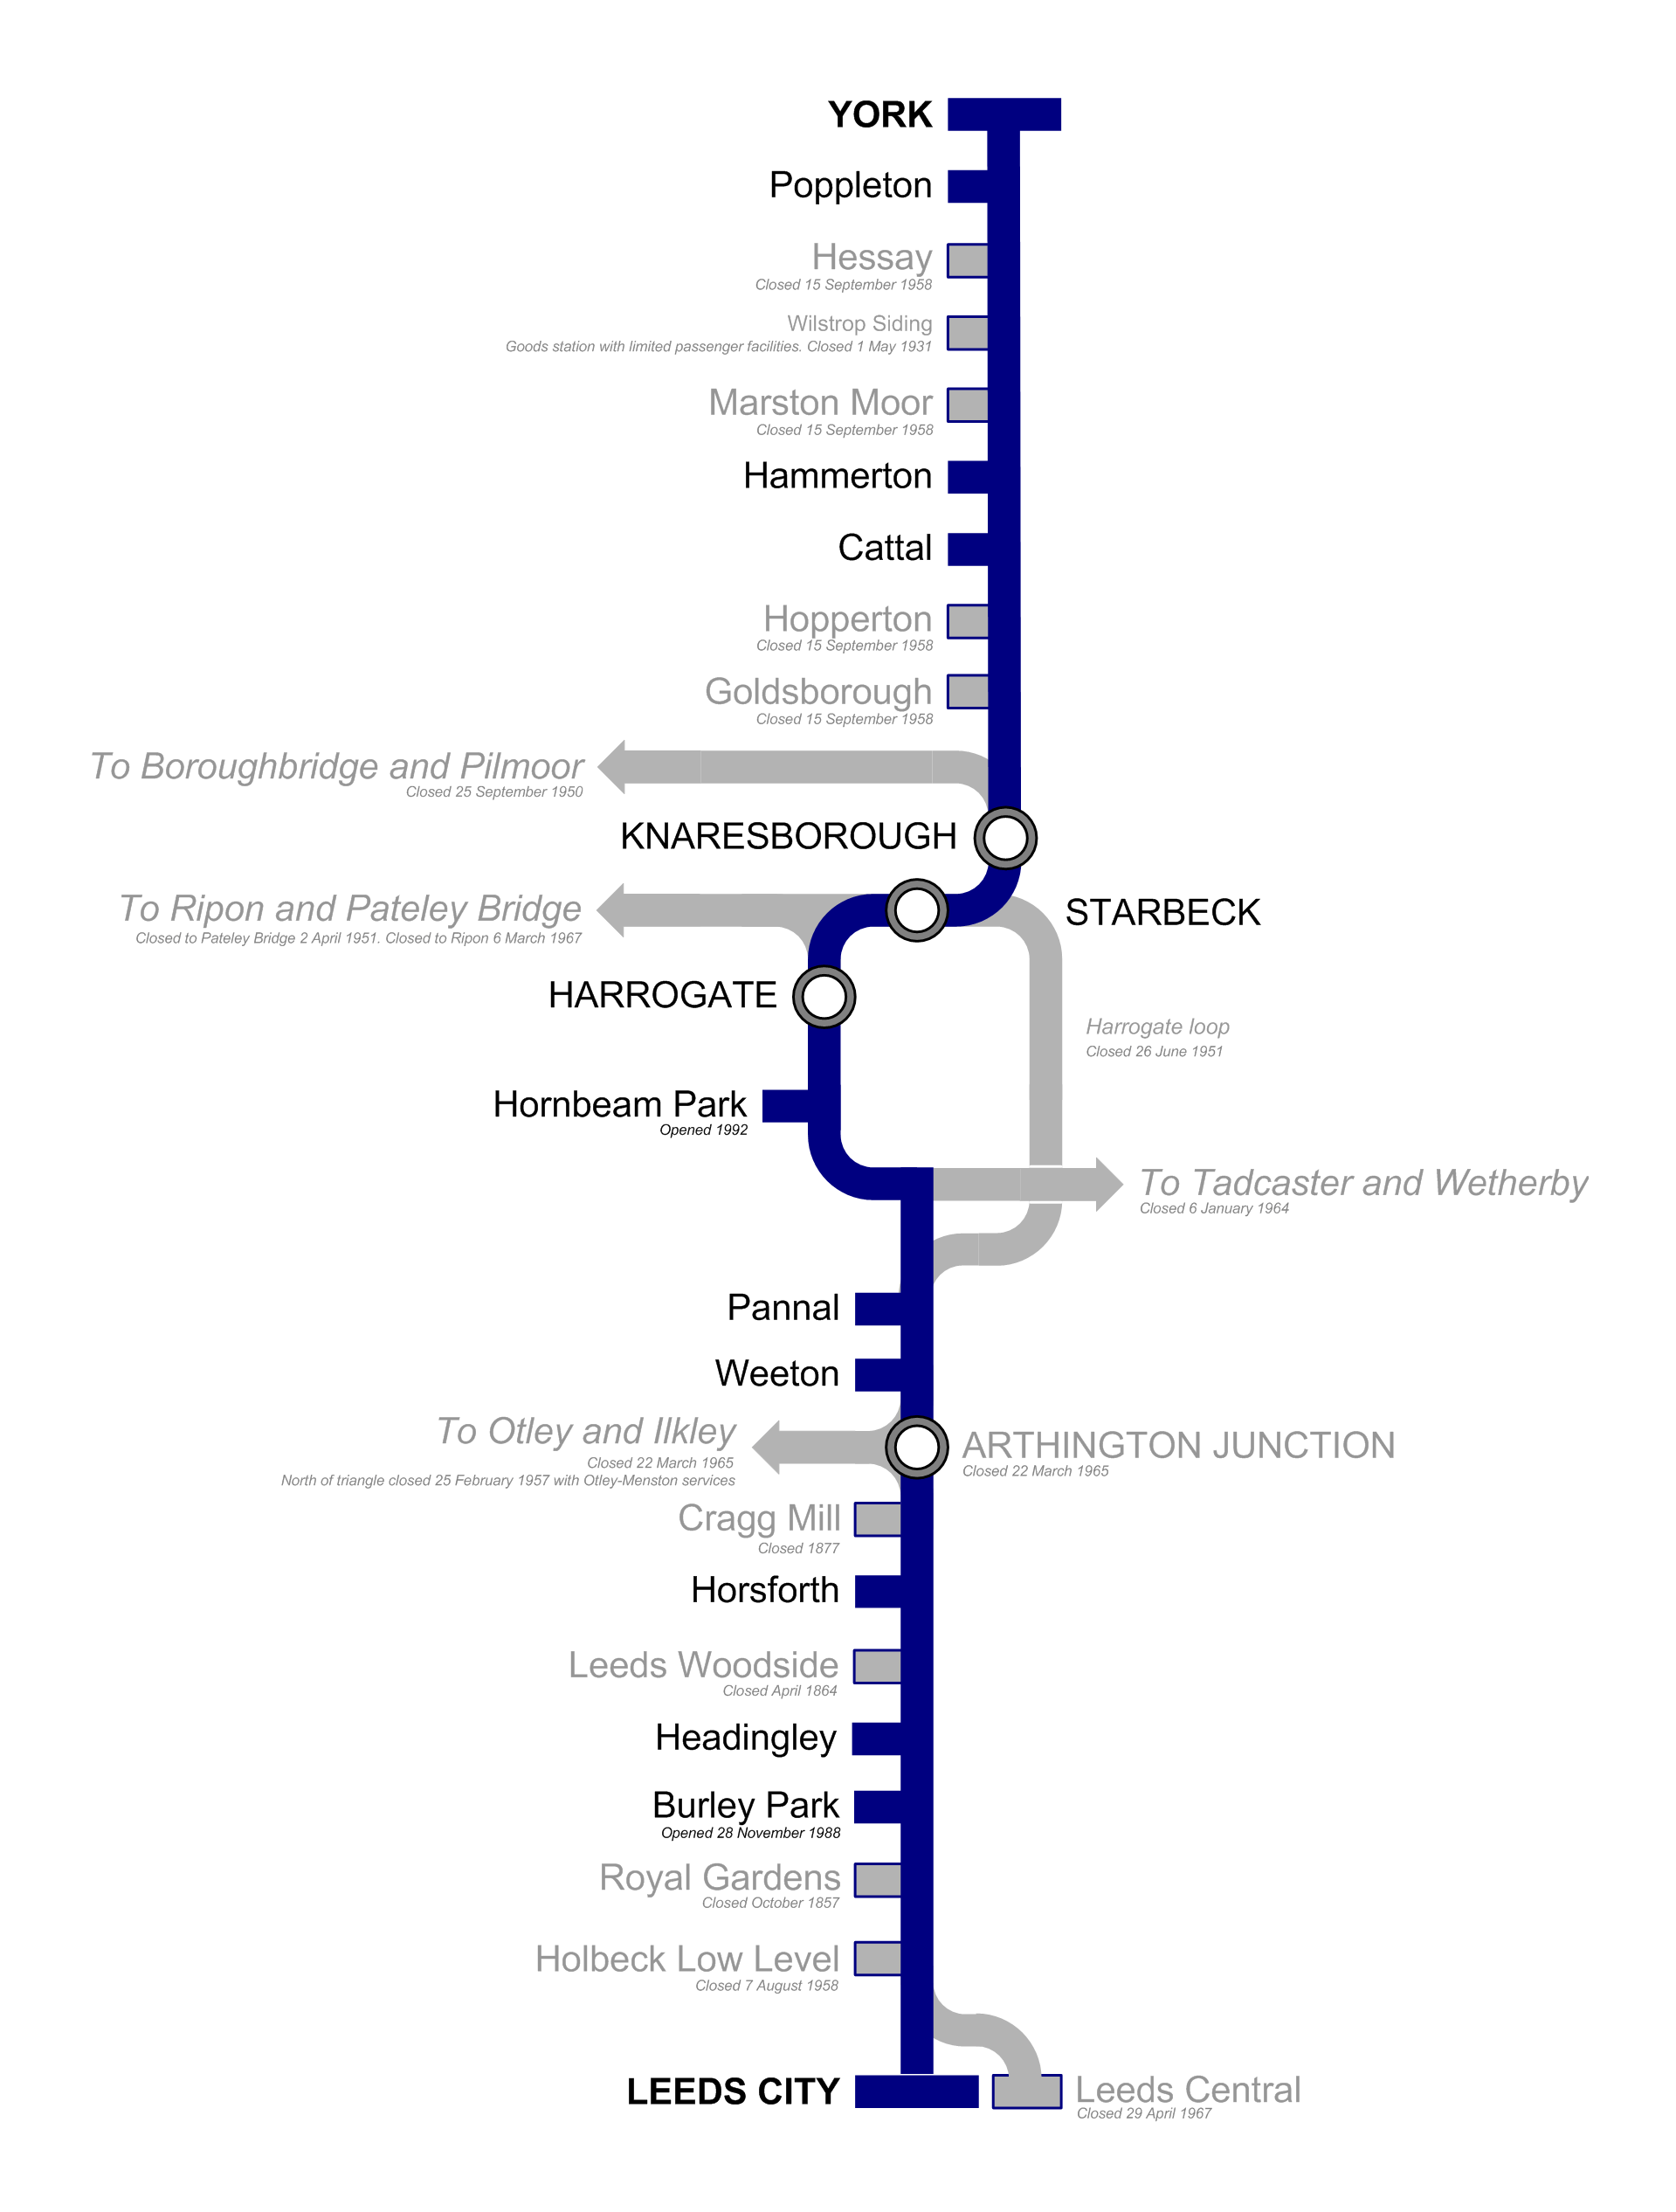 Fajl British Rail York To Leeds Via Harrogate Diagram With